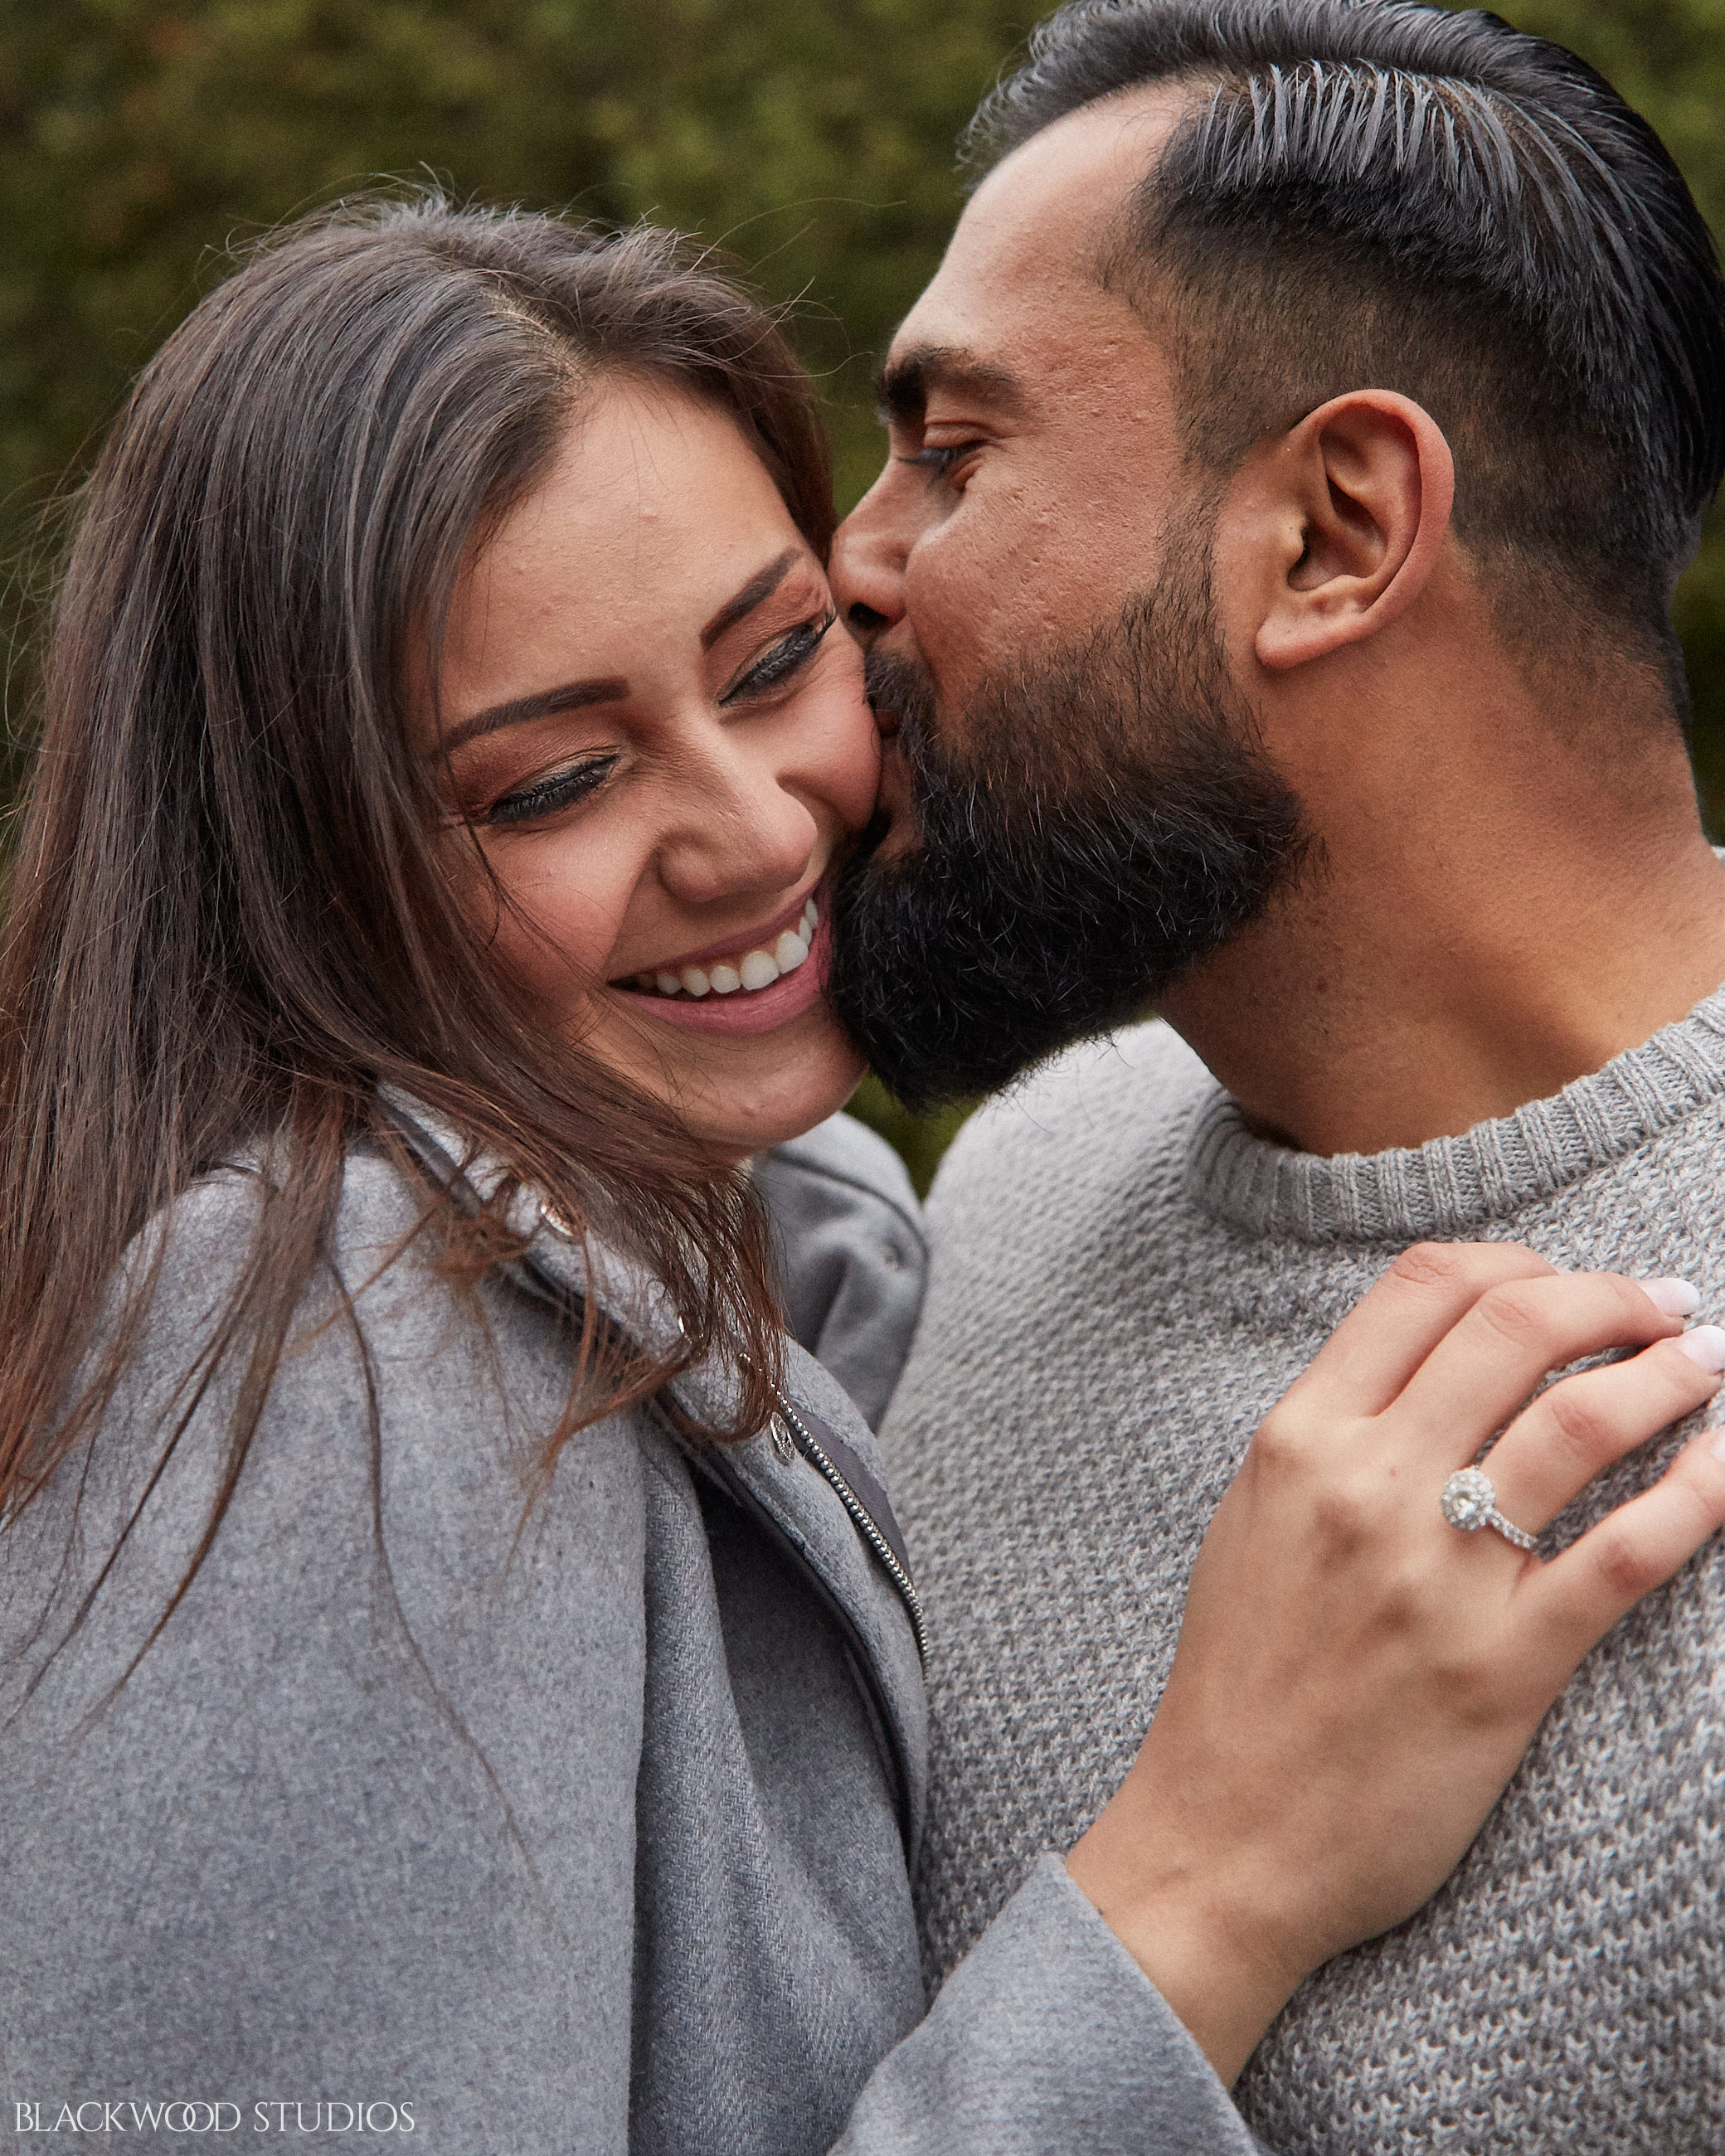 Blackwood-Studios-20181028180923-Farah-and-Zain-Engagement-photography-Belfountain-Conservation-Area-Caledon-Ontario.jpg